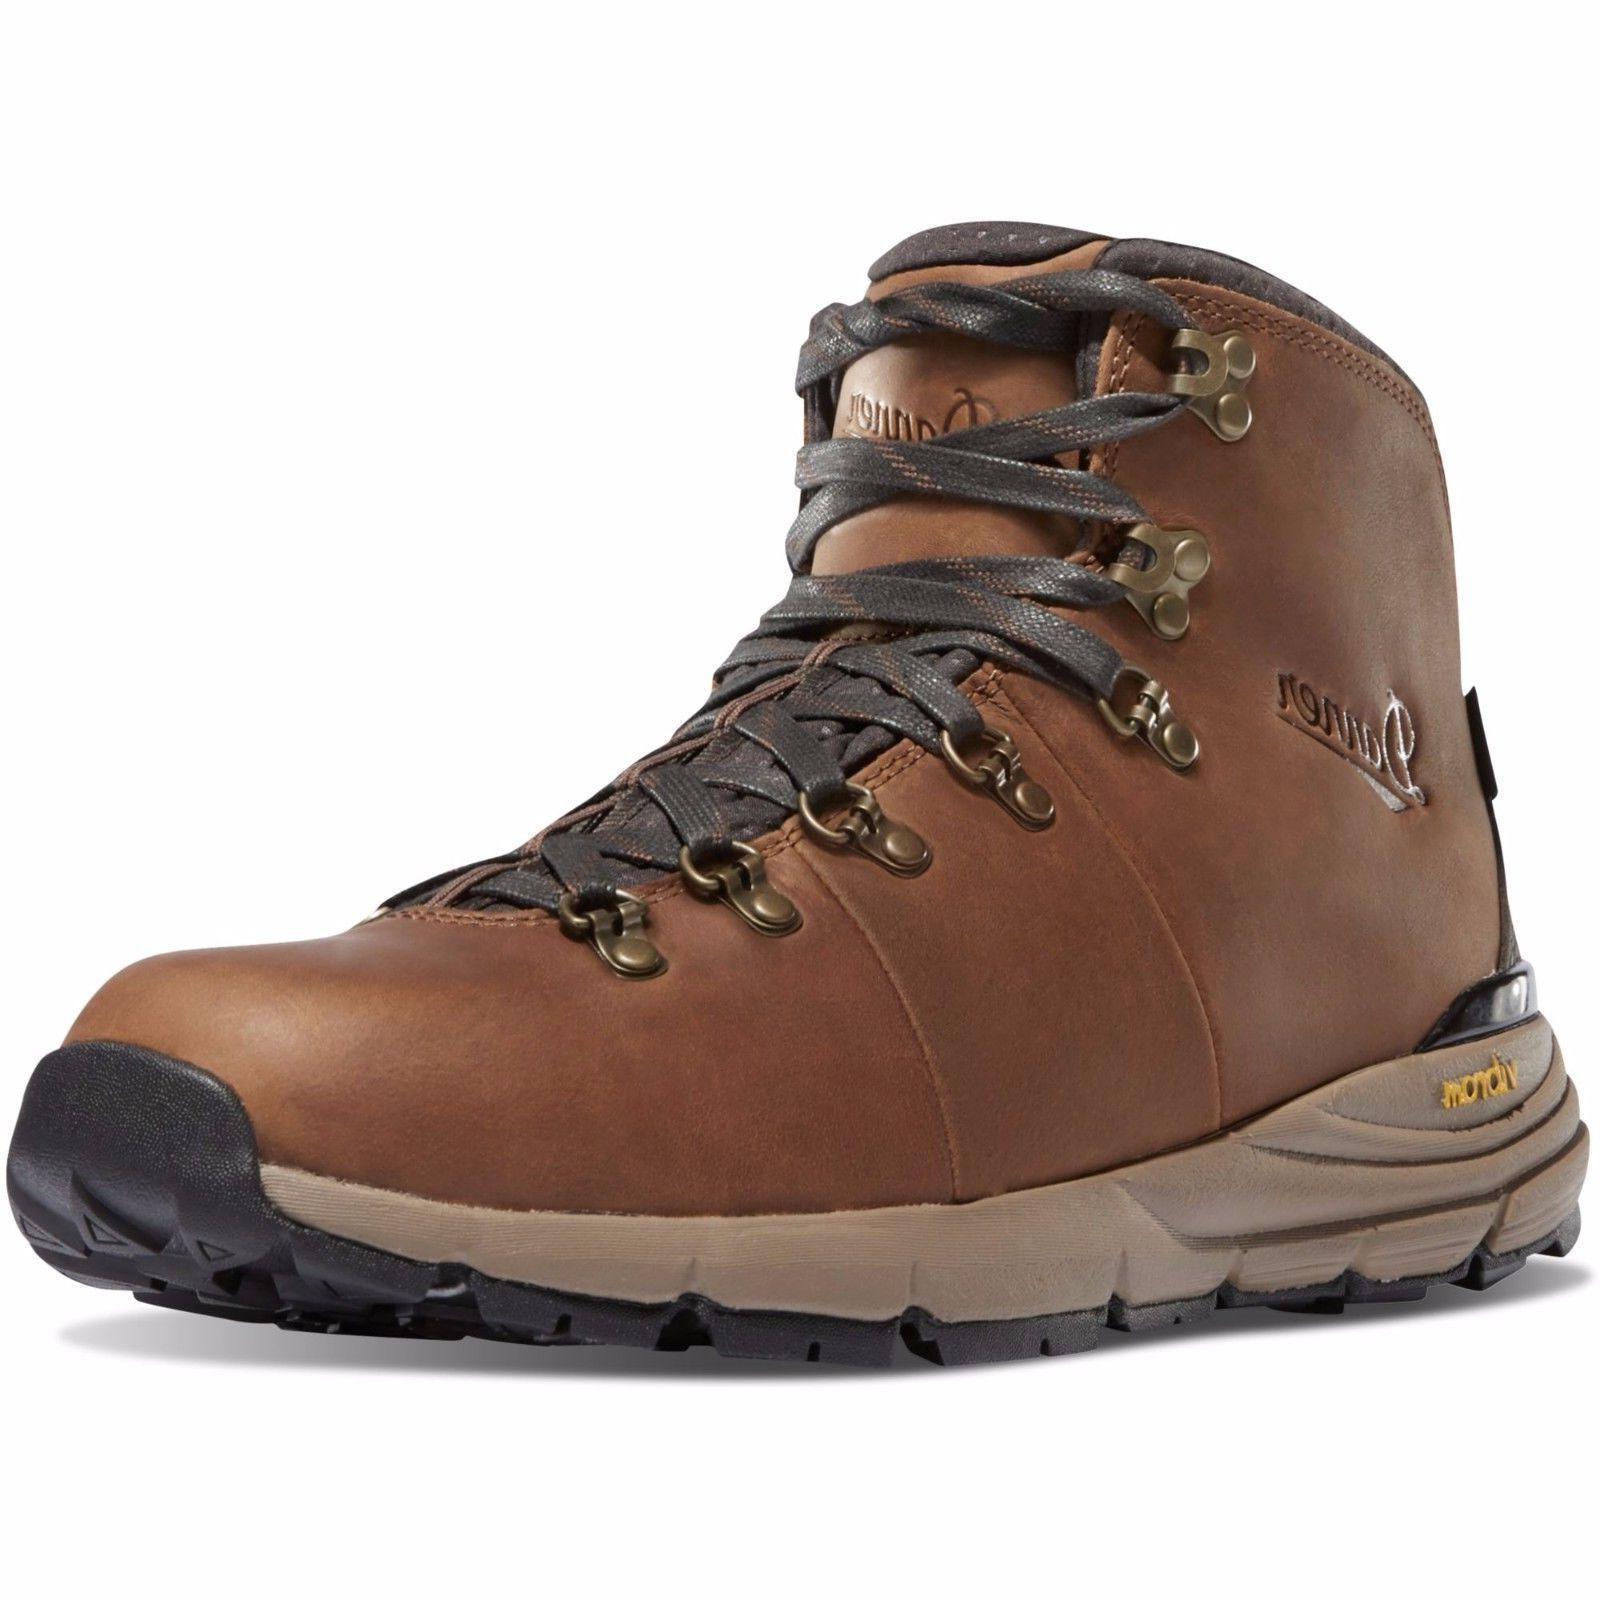 "Danner 62250 Men's Mountain 600 4.5"" Rich Brown Performance"